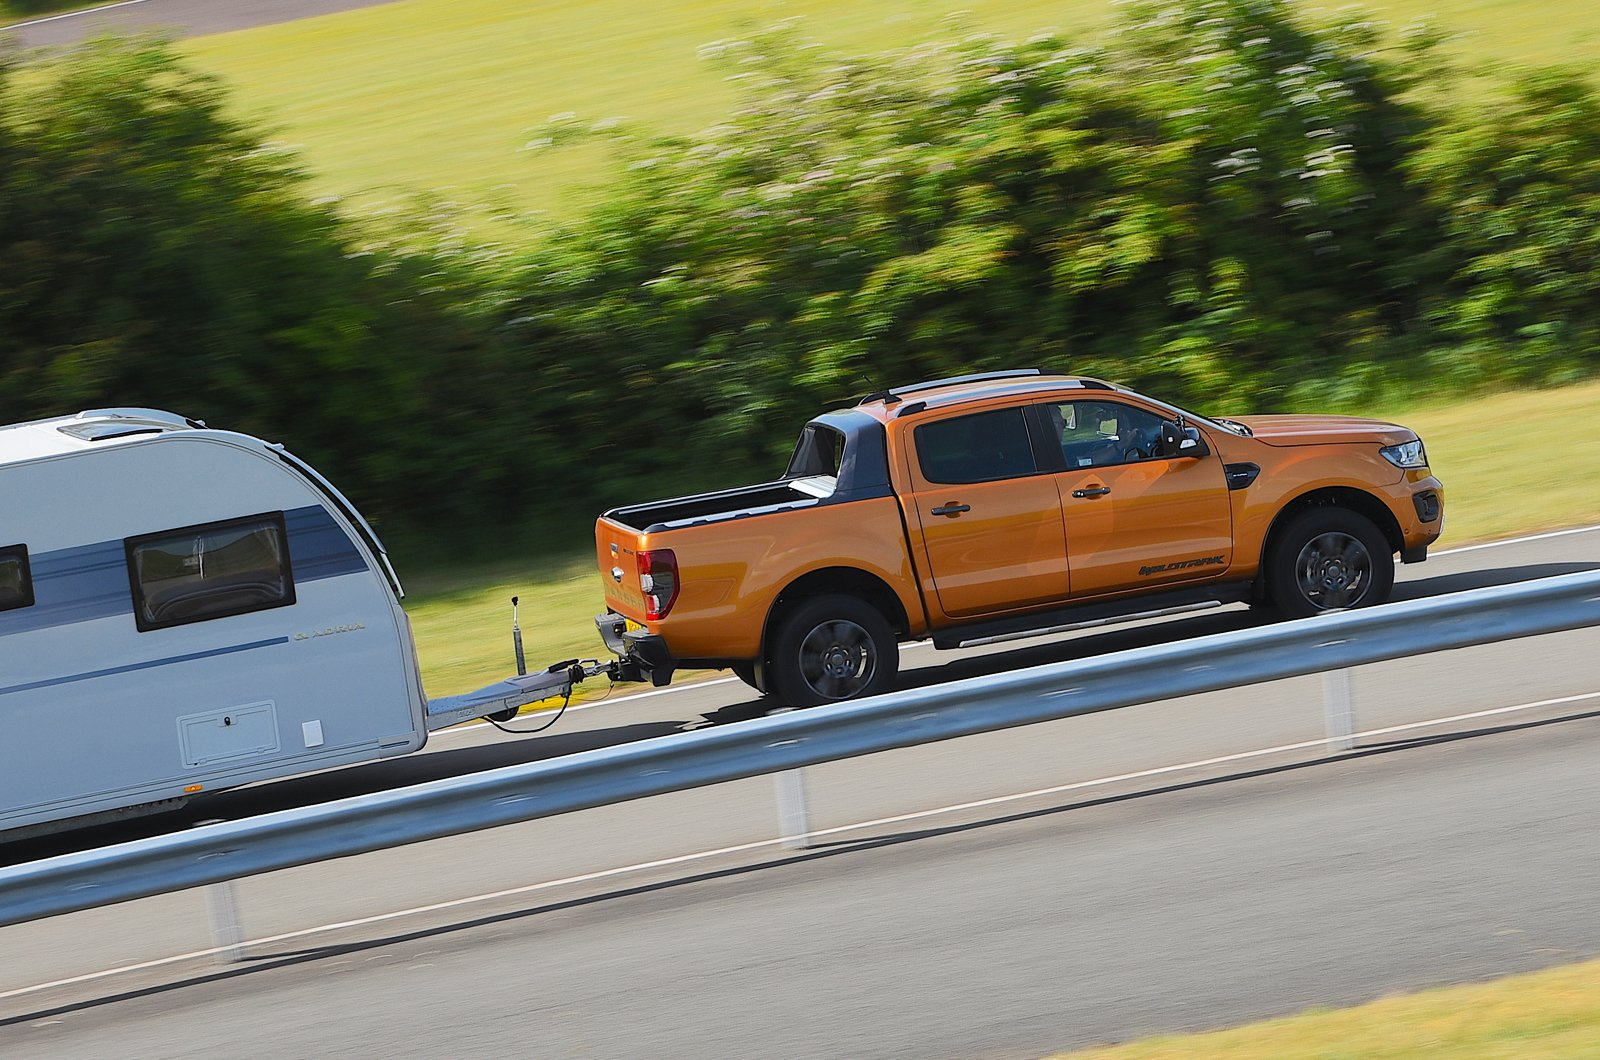 Ford Ranger towing a caravan - side